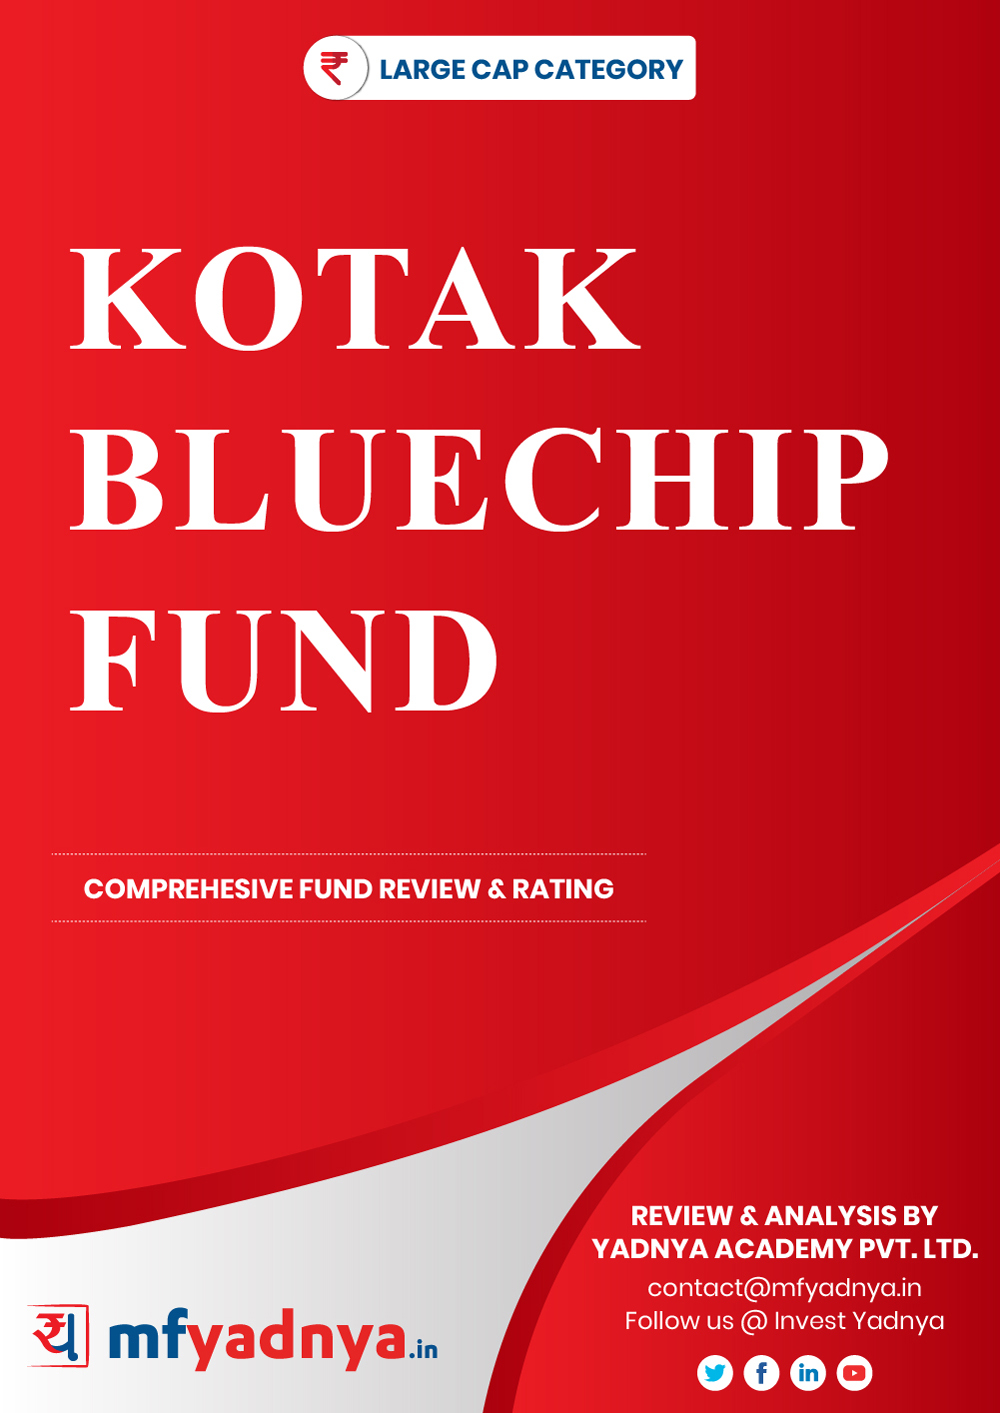 Large Cap Category Review - Kotak Bluechip Fund. Most Comprehensive and detailed MF review based on Yadnya's proprietary methodology of Green, Yellow & Red Star. Detailed Analysis & Review based on August 31st, 2019 data.